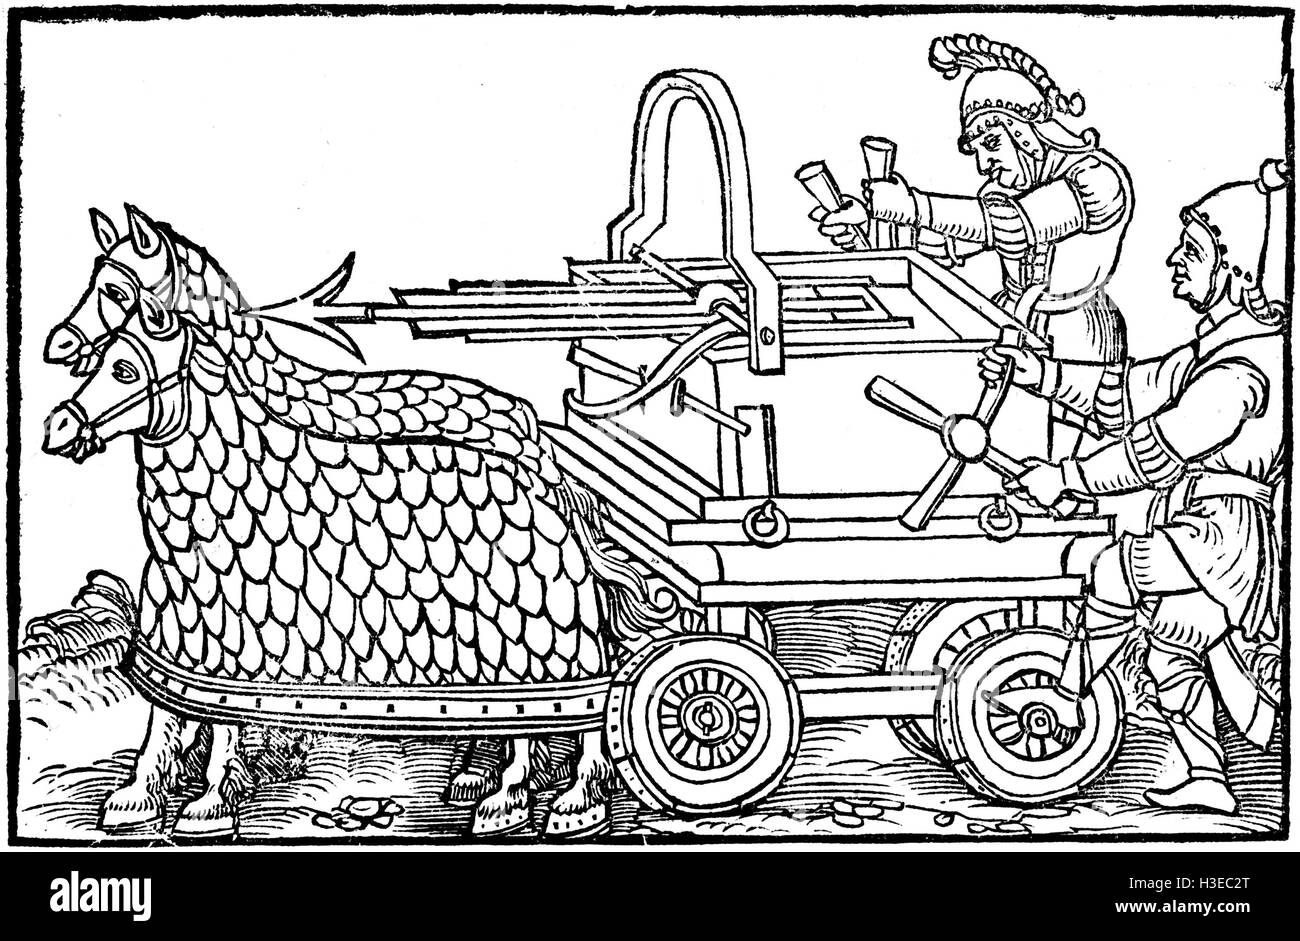 ROMAN HORSE DRAWN BALLISTA from De Rebus Bellicis (On The Things of War) published in 1552 being a reprint of a - Stock Image